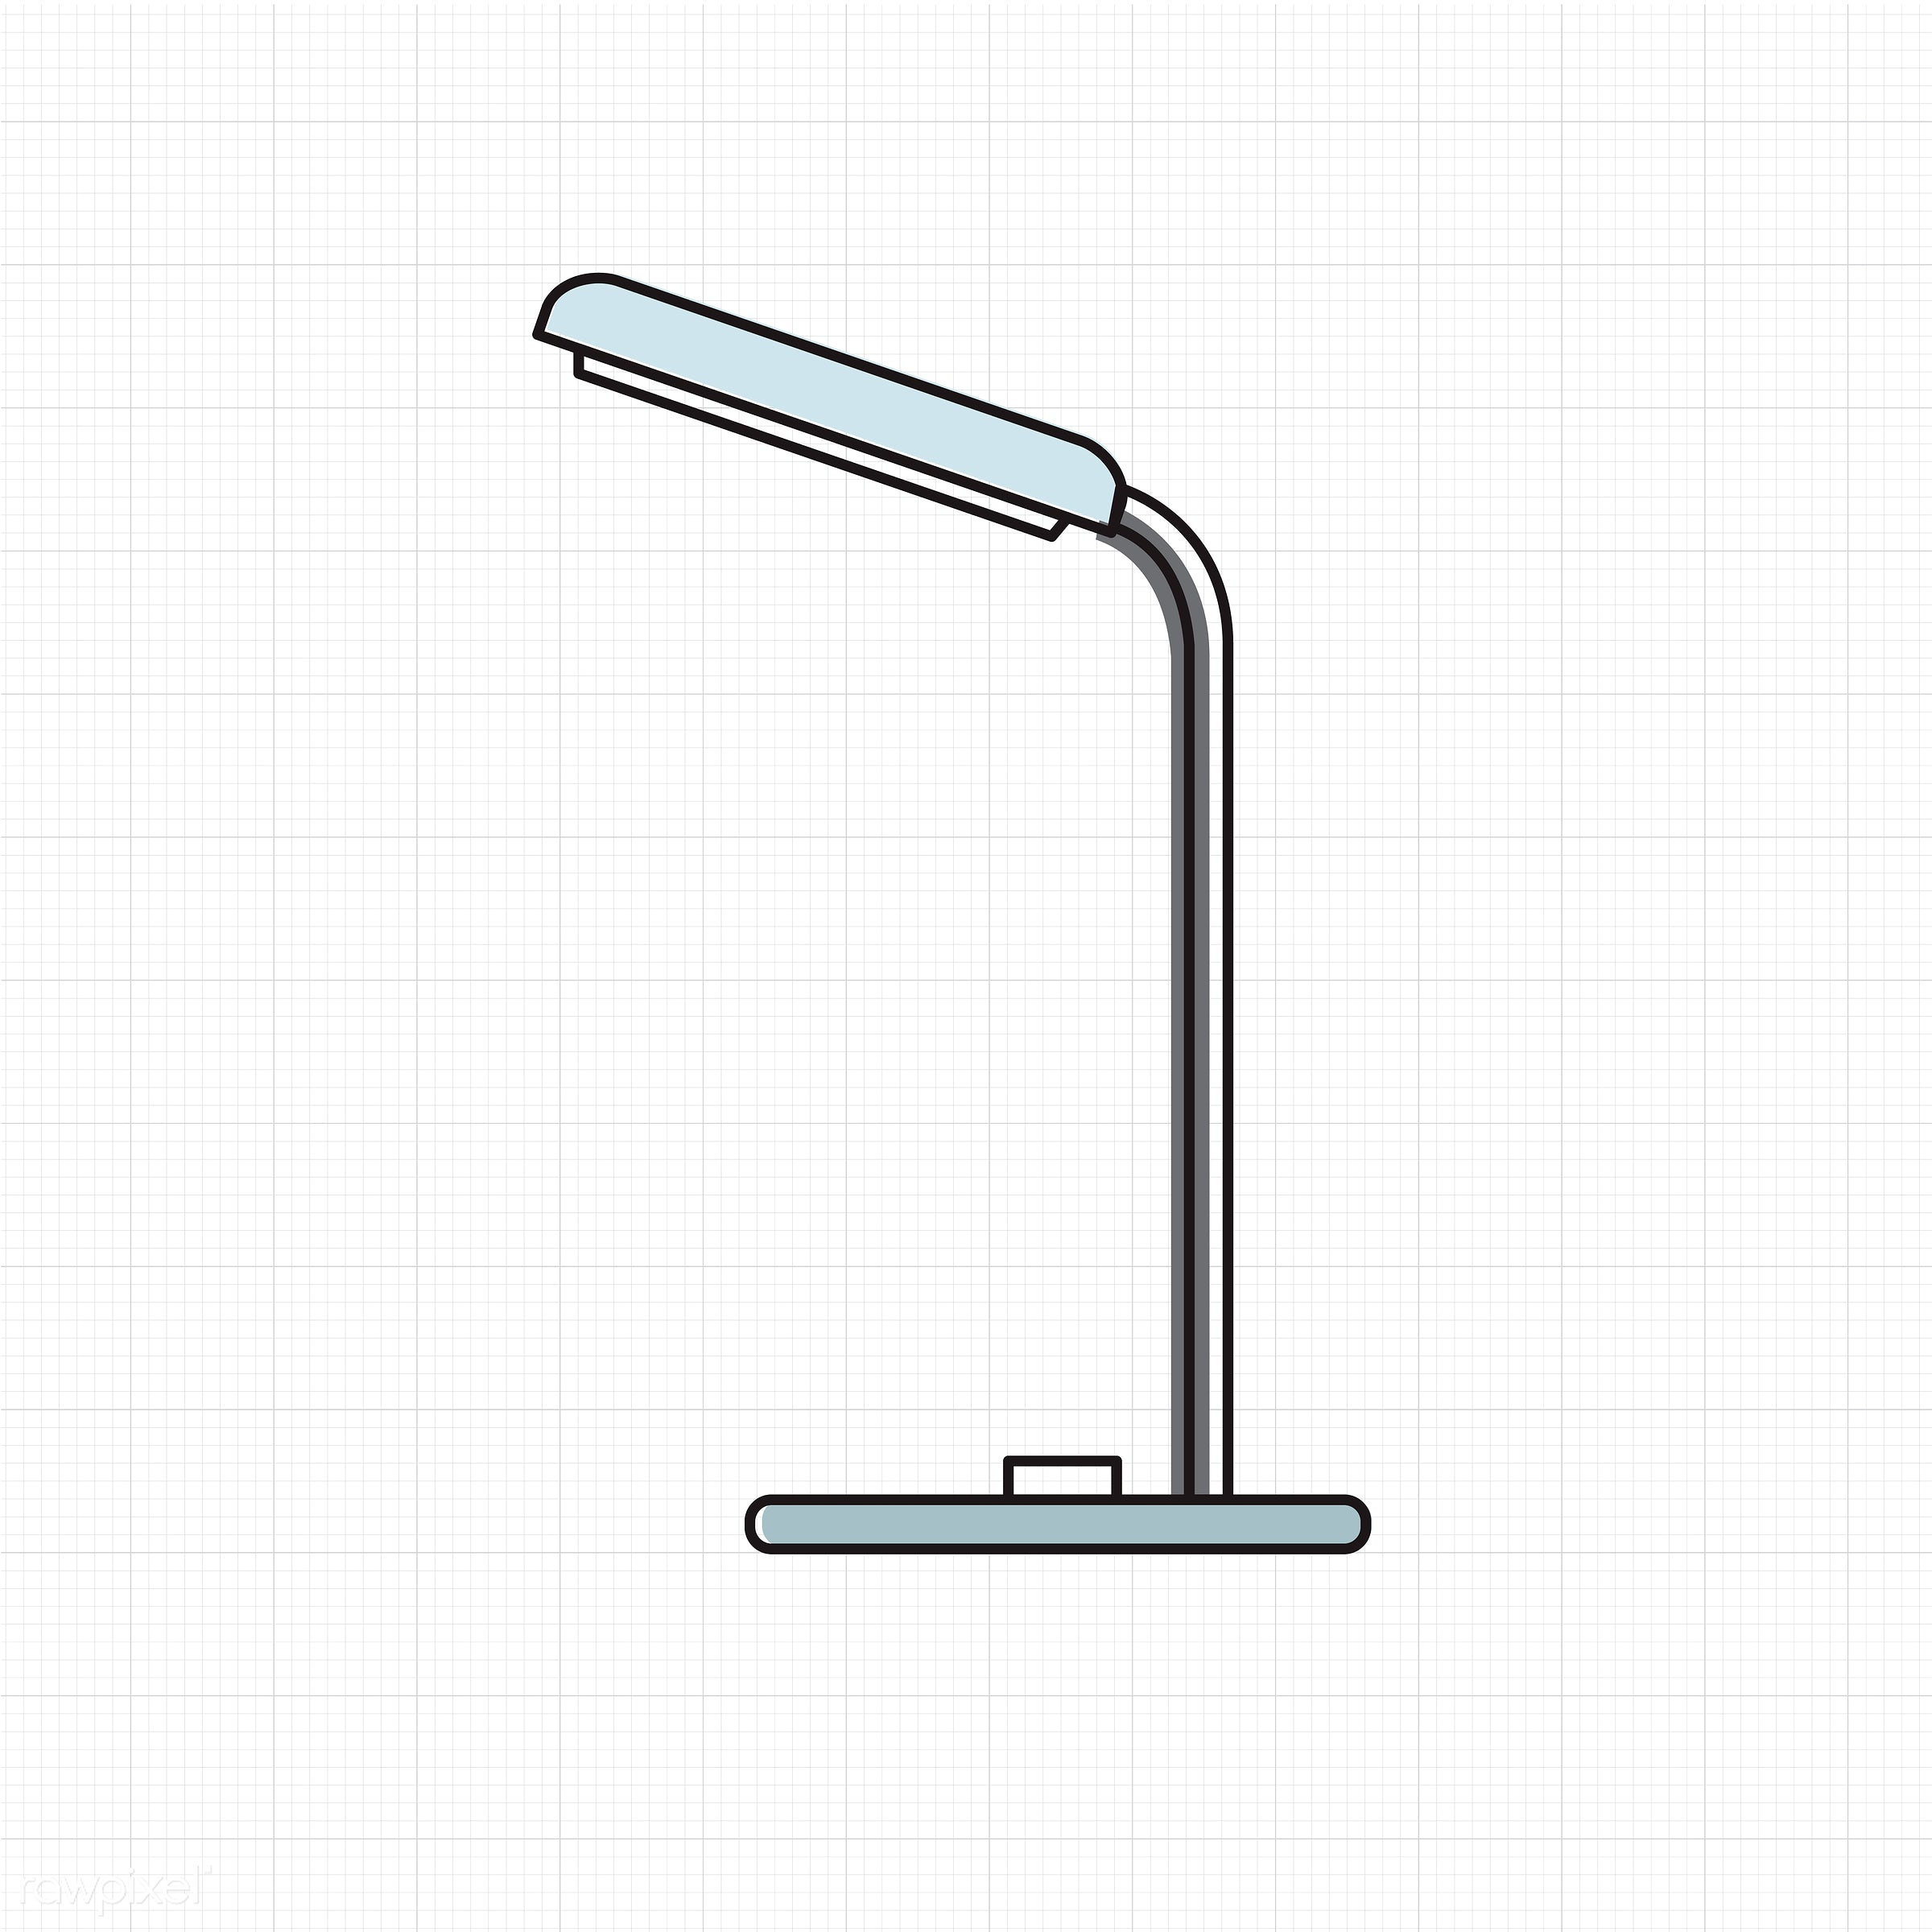 Vector of lamp icon - bulb, decoration, design, electric, emblem, equipment, graphic, icon, illustration, lamp, object, sign...